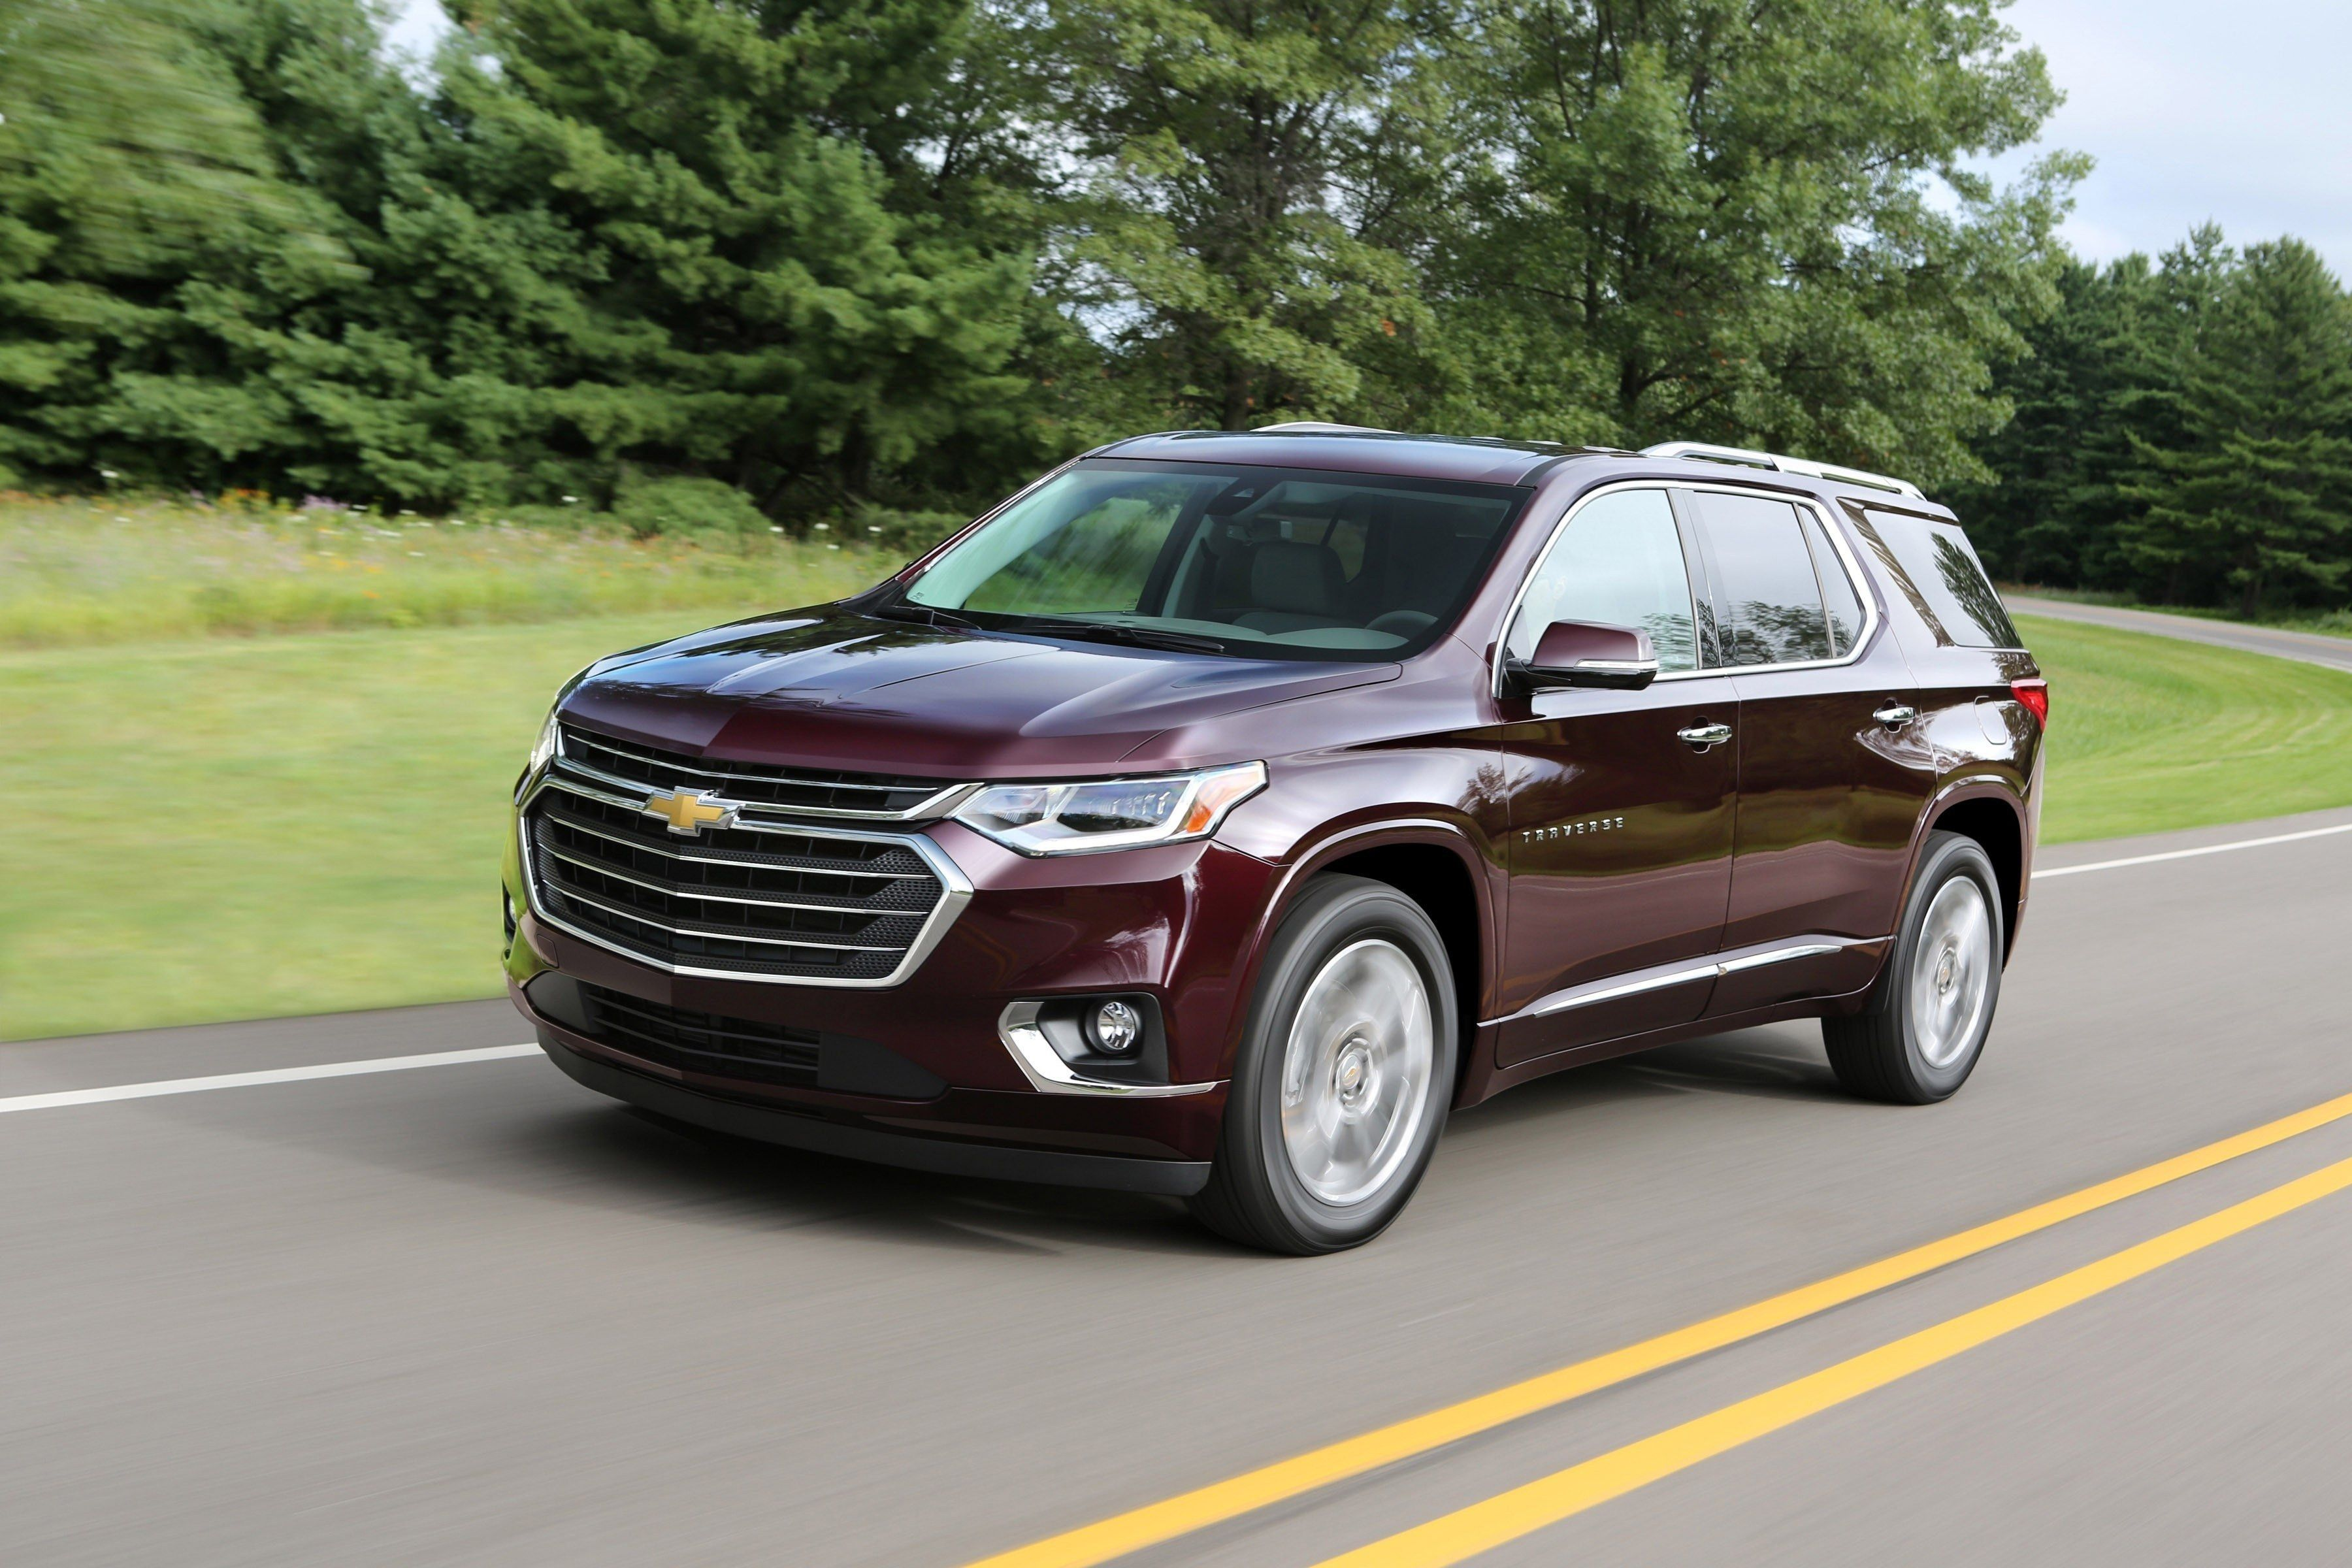 2019 Chevrolet Traverse High Country Awd Chevrolet Traverse Chevrolet Captiva Chevy Trailblazer